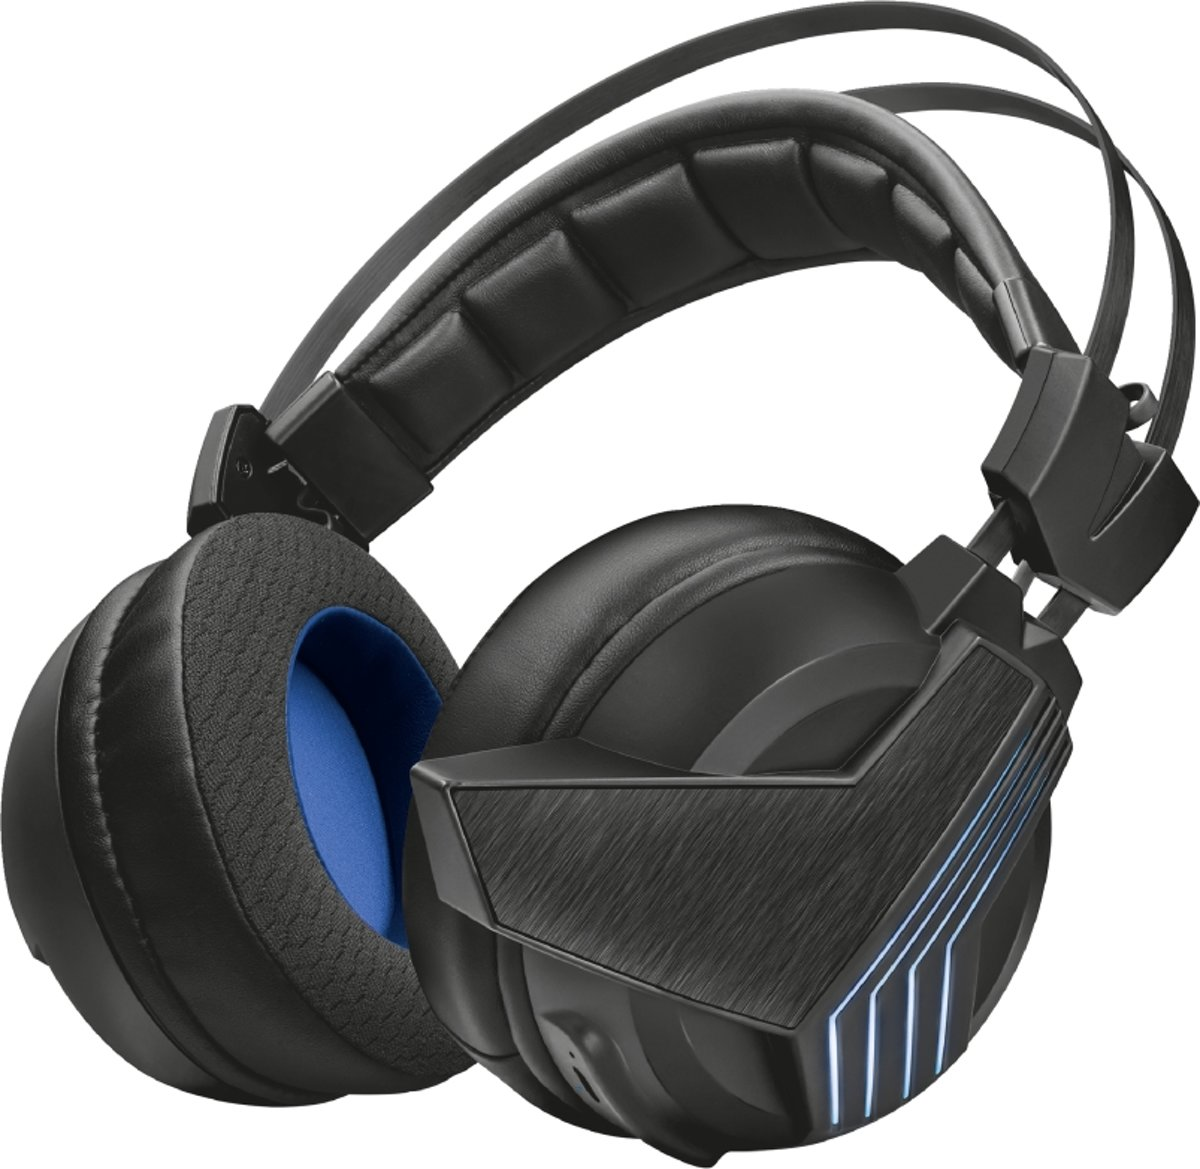 Afbeelding van Overear  GXT 393 Magna - Playstation 4 - Wireless 7.1 Surround Gaming Headset - PS4